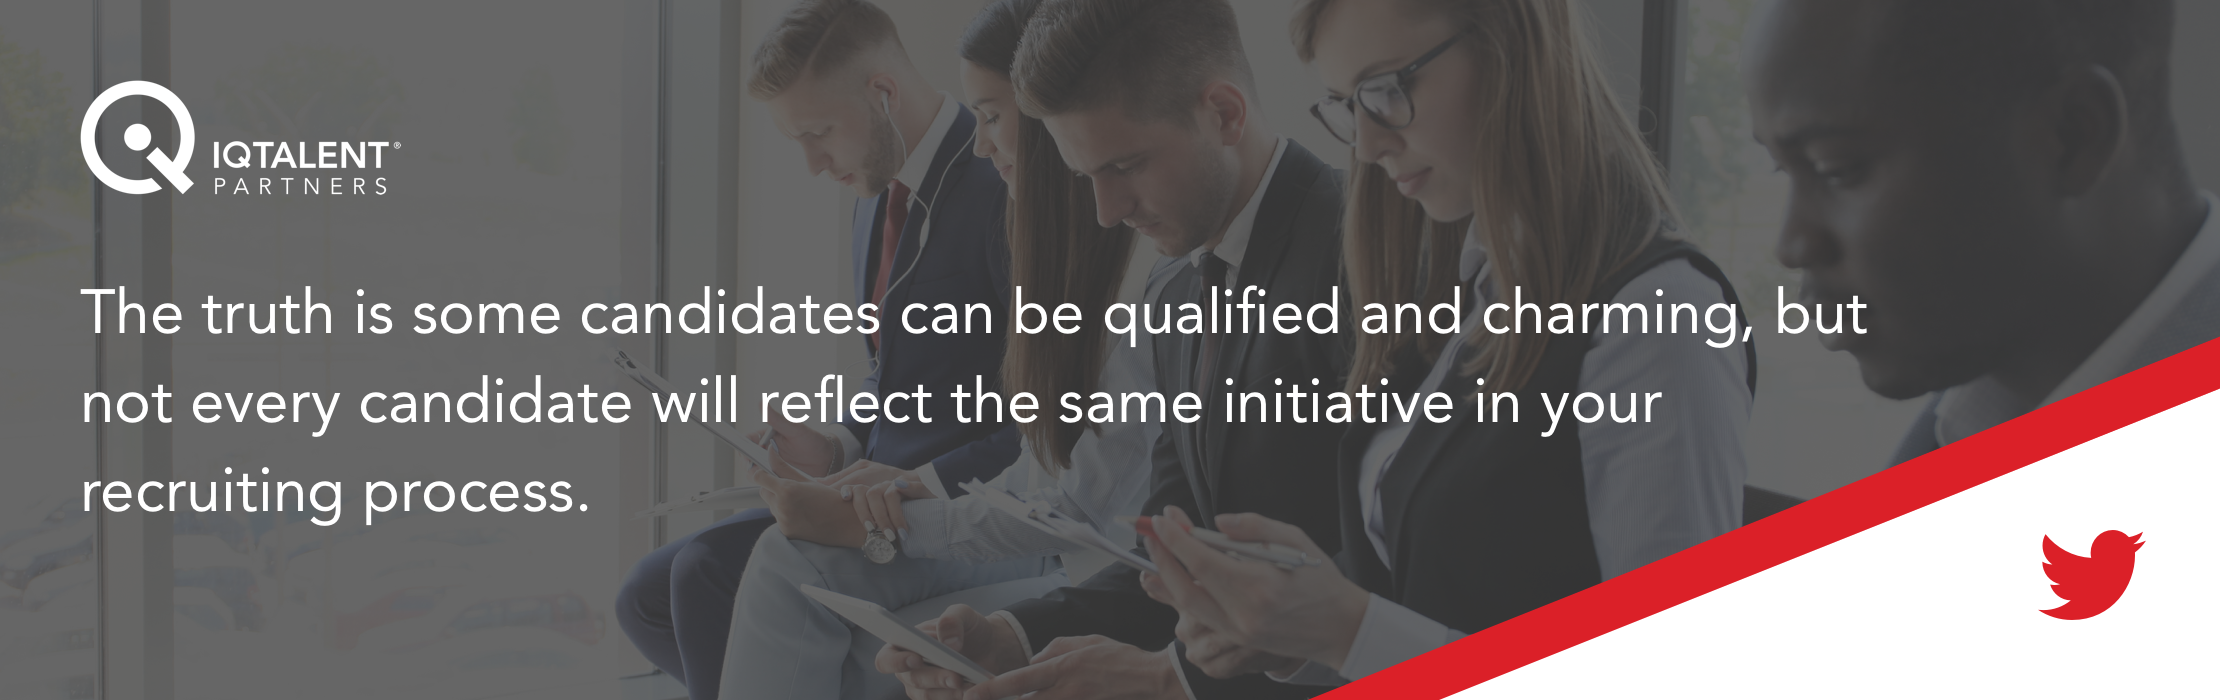 The truth is some candidates can be qualified and charming, but not every candidate will reflect the same initiative in your recruiting process.